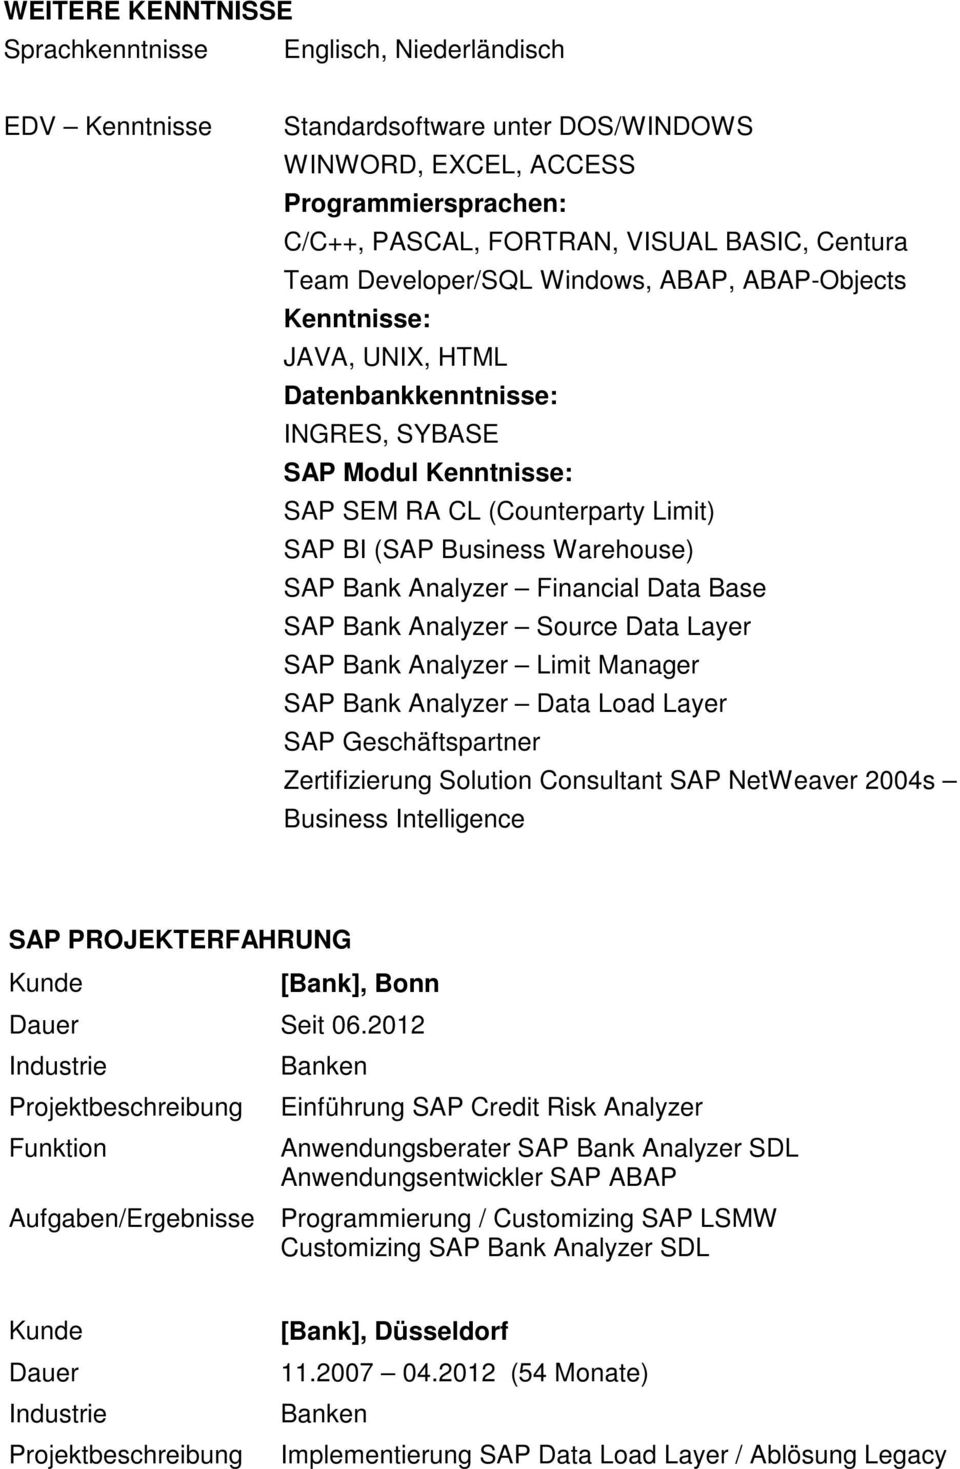 Warehouse) SAP Bank Analyzer Financial Data Base SAP Bank Analyzer Source Data Layer SAP Bank Analyzer Limit Manager SAP Bank Analyzer Data Load Layer SAP Geschäftspartner Zertifizierung Solution